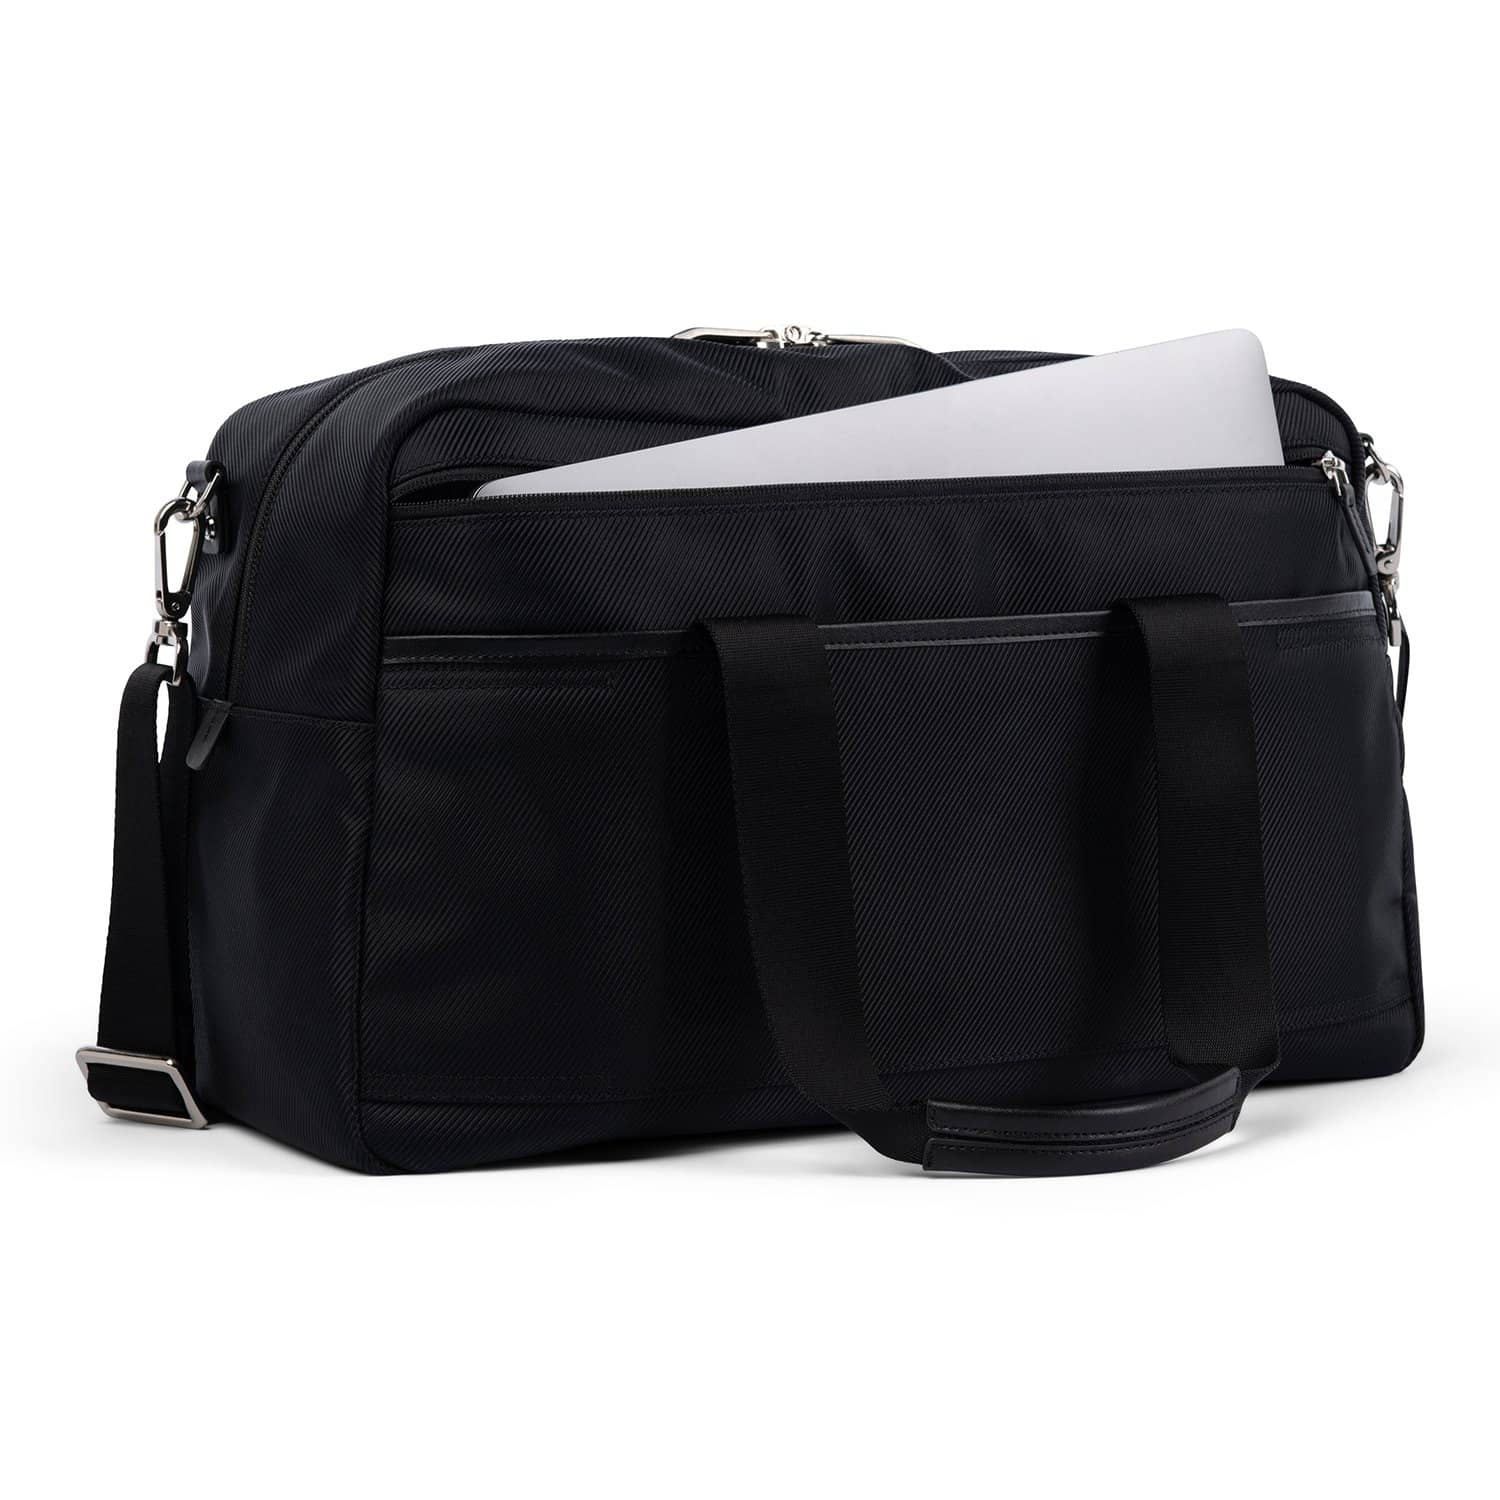 Travelpro® x Travel + Leisure® UnderSeat Tote